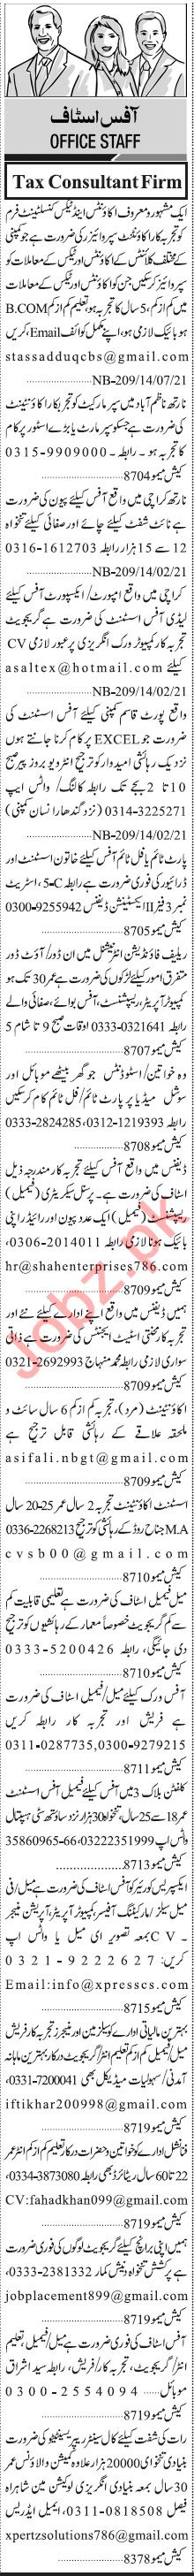 Jang Sunday Classified Ads 14th Feb 2021 for Management